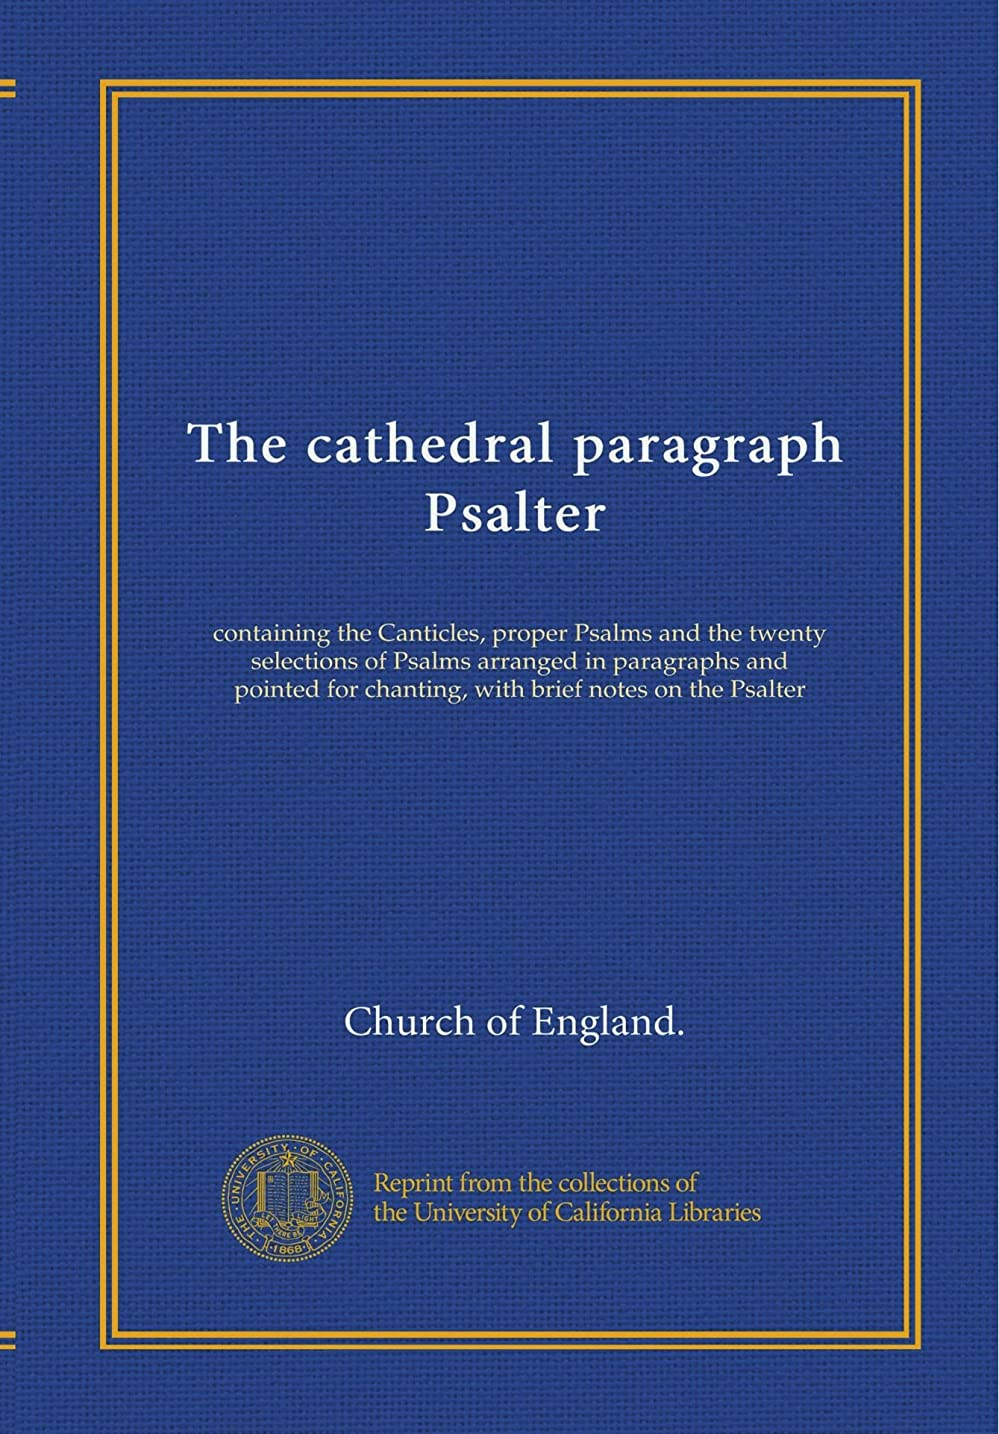 ポケット先生たらいThe cathedral paragraph Psalter: containing the Canticles, proper Psalms and the twenty selections of Psalms arranged in paragraphs and pointed for chanting, with brief notes on the Psalter